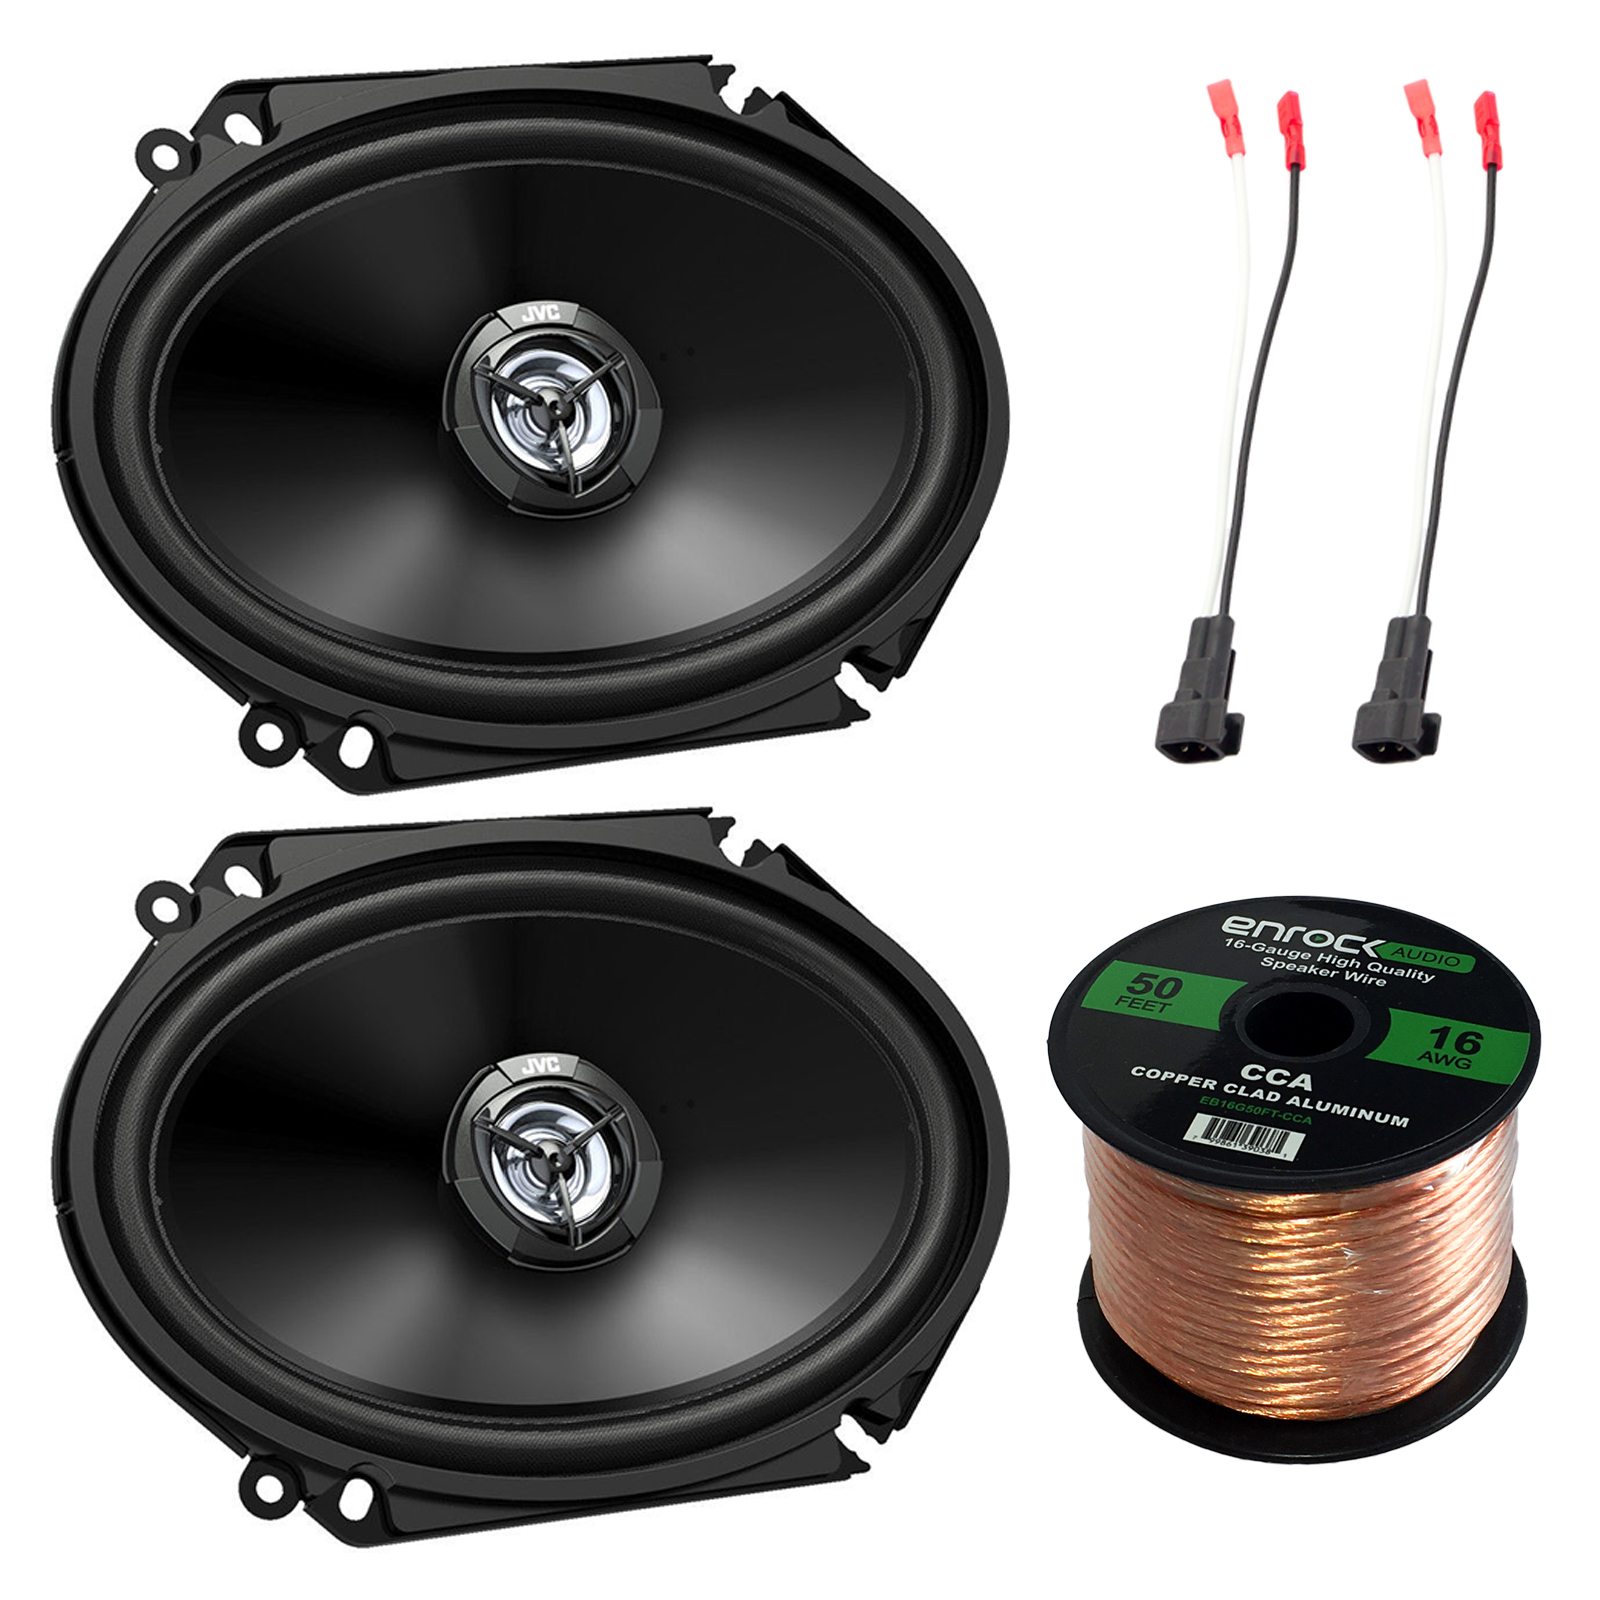 hight resolution of jvc cs dr6820 300w 6x8 2 way factory upgrade coaxial speakers efdsh98up speaker harness adapter w red bullet for select ford vehicles 1998 up